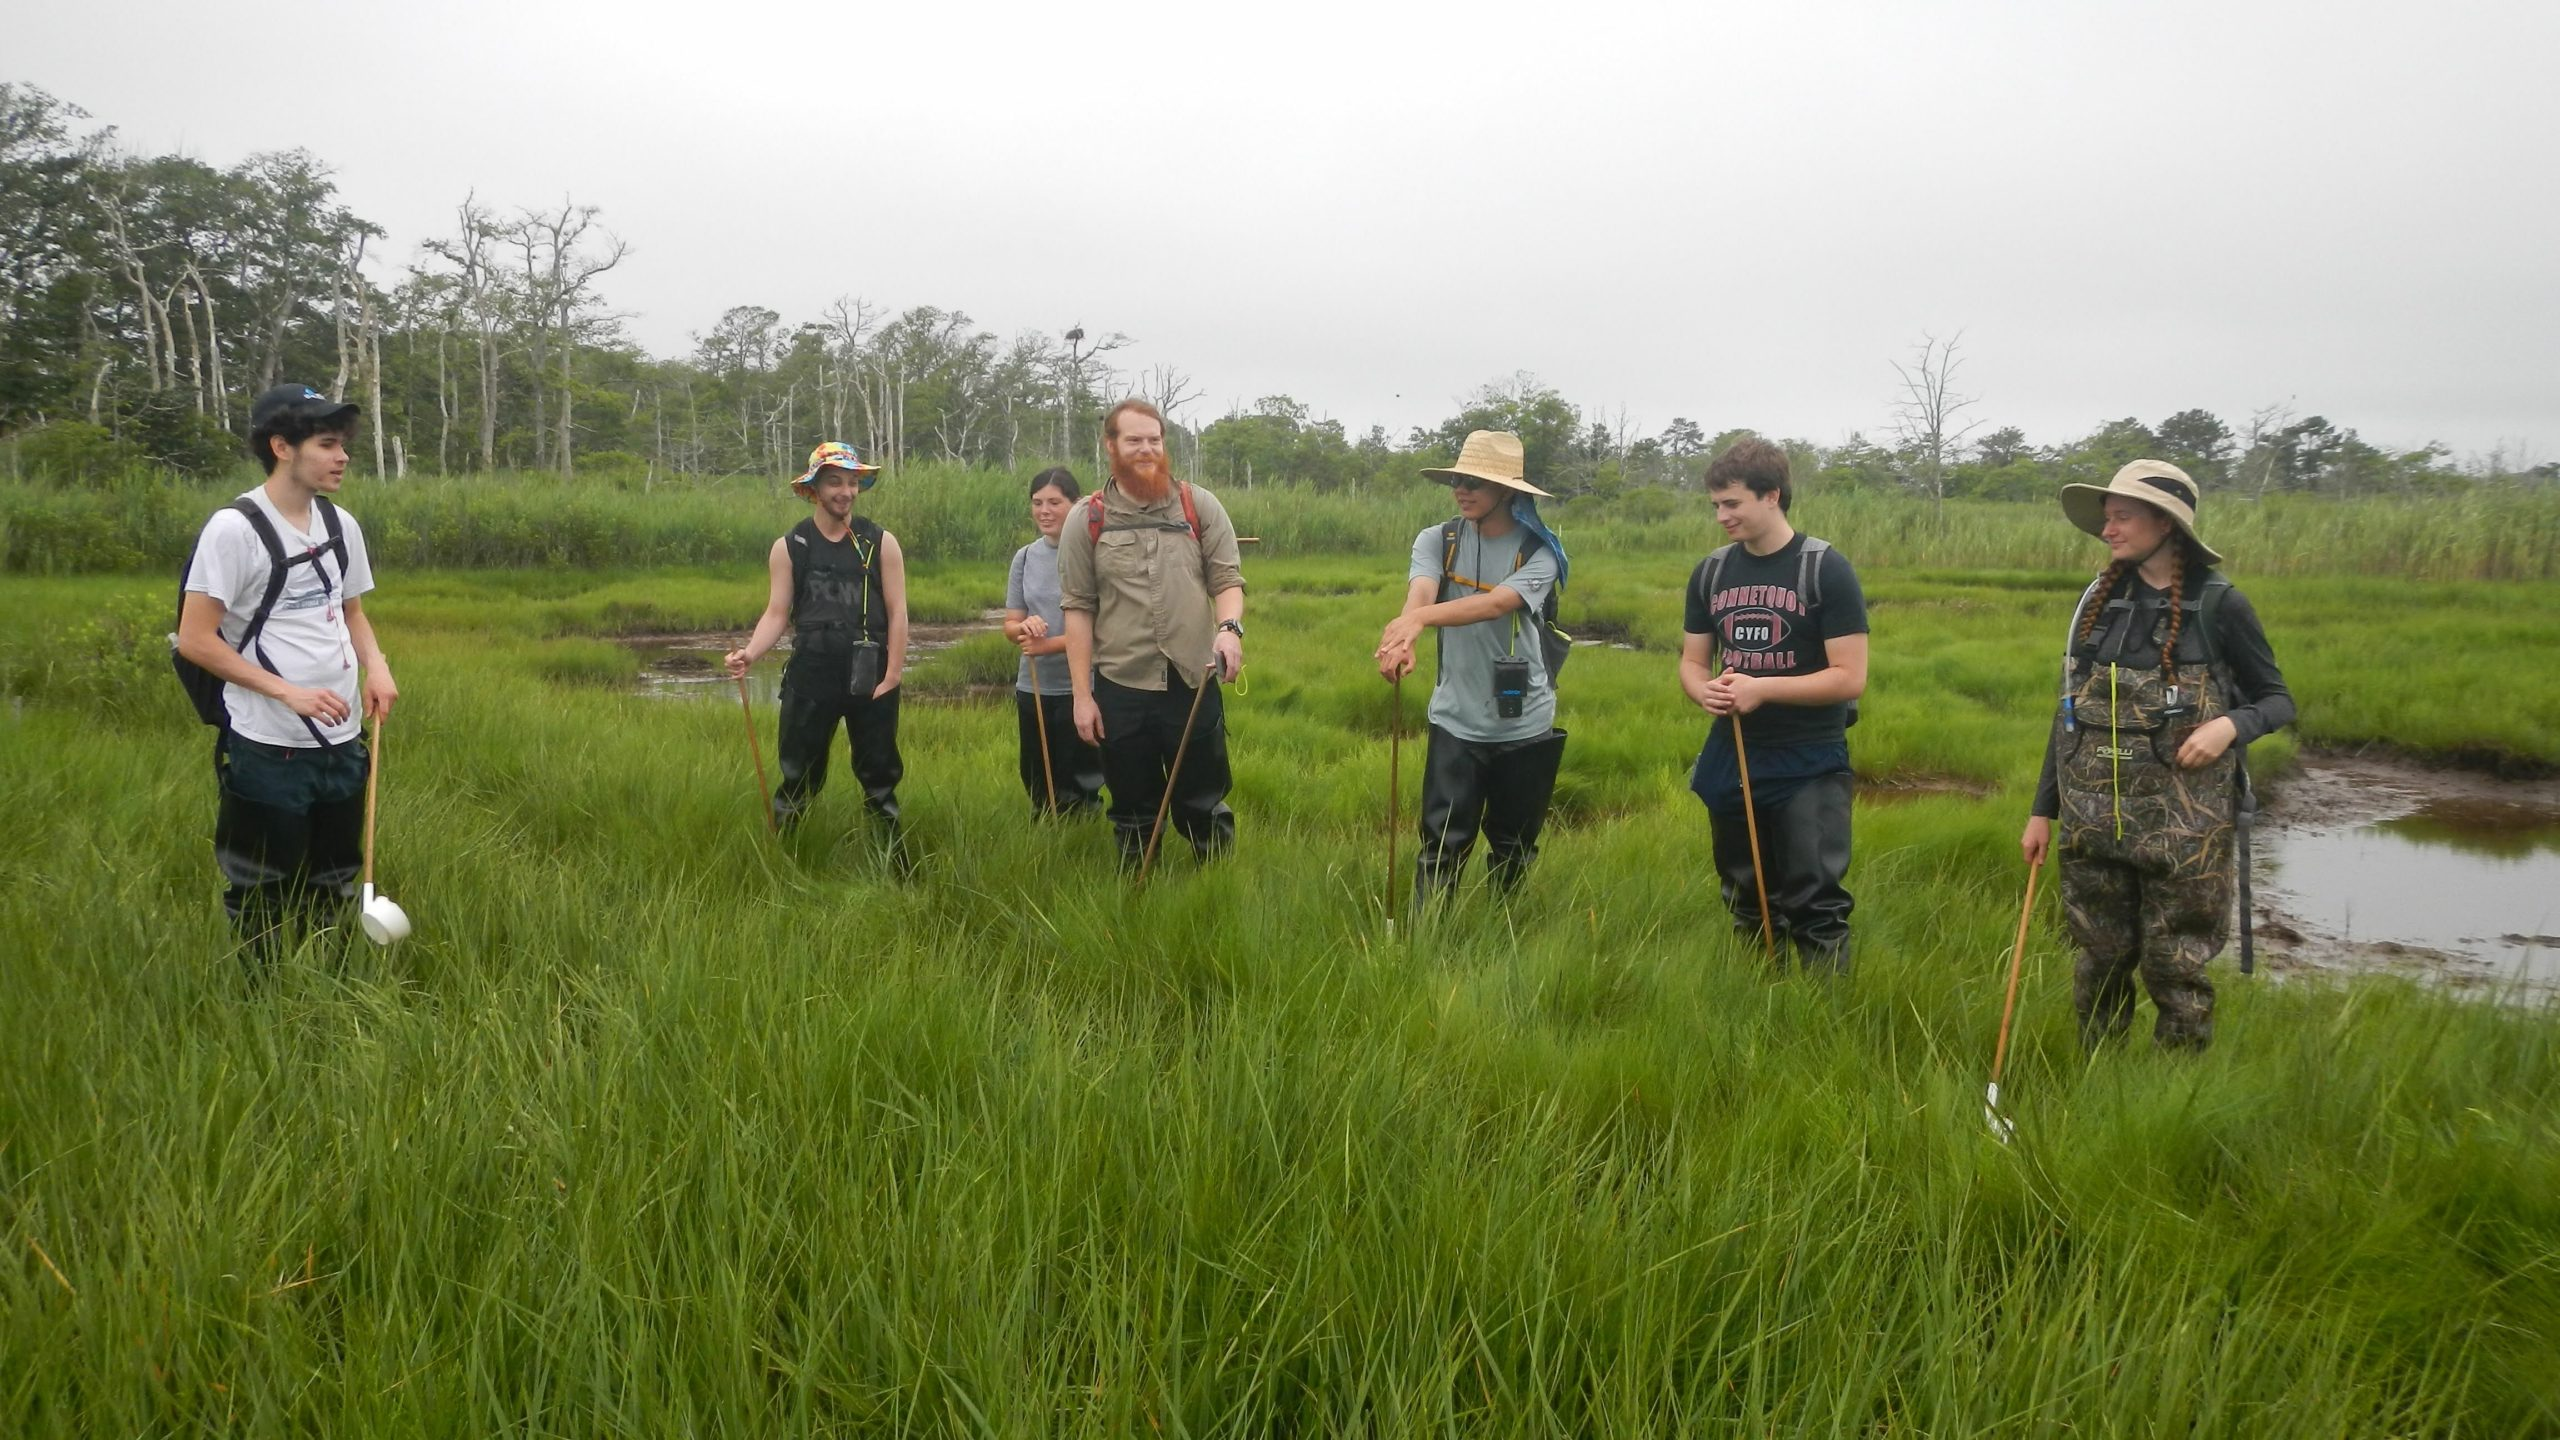 Suffolk County Community College interns prepare to take environmental samples in a south shore salt marsh. From left: Jake Montgomery, David Ziff, Jessica Cormier, Field Supervisor Nicholas Cormier, Brendan Lin, Kyler Vander Putten, and Grace Nelson.